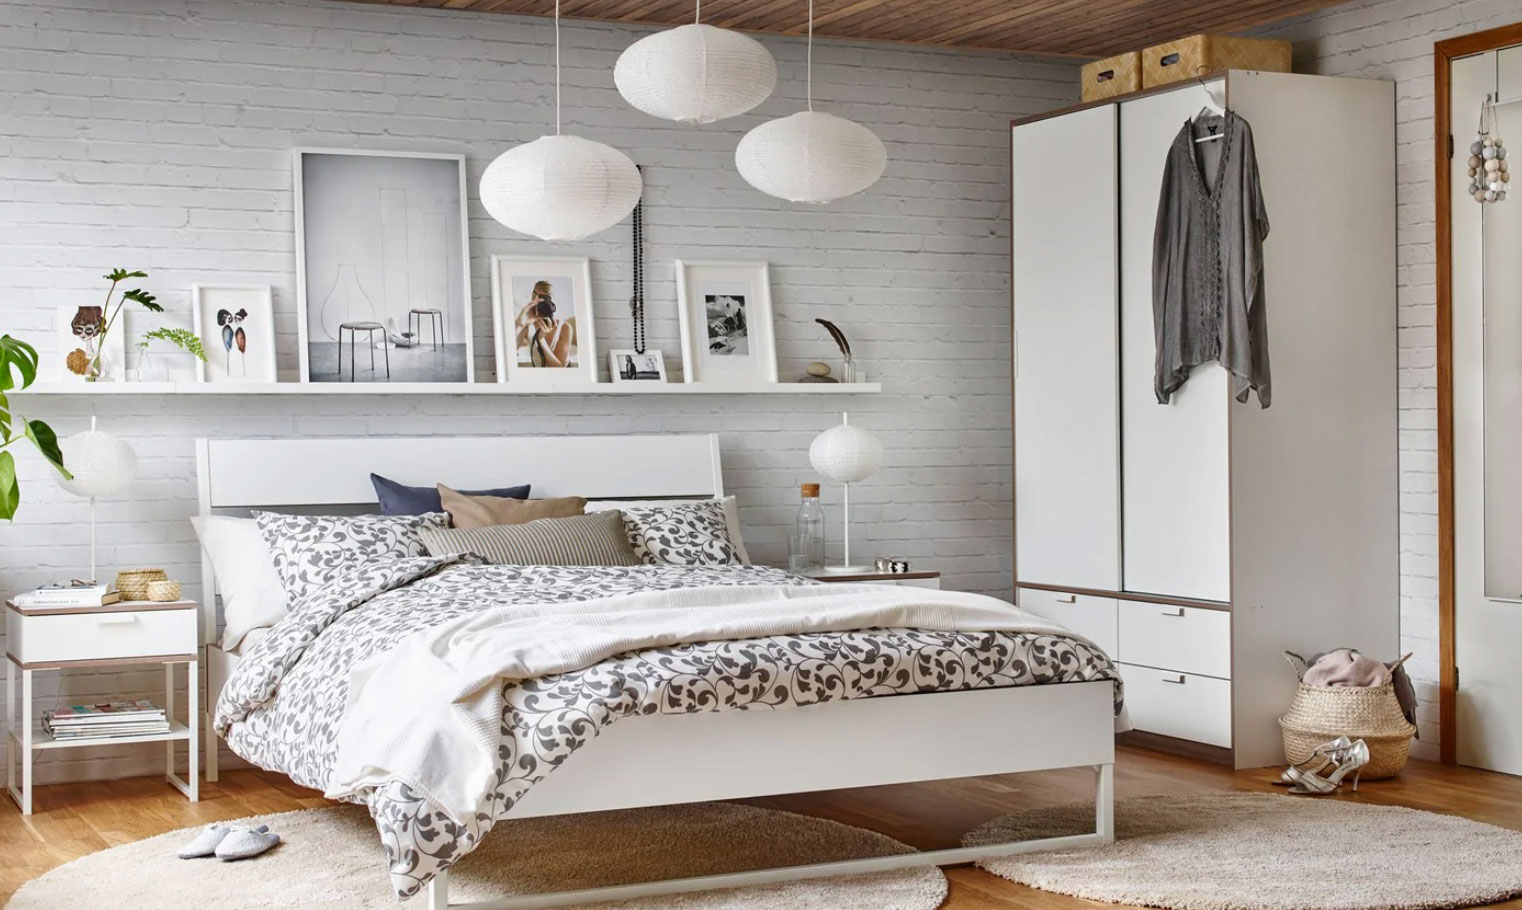 7 Ways Ikea Lighting Can Revolutionise Your Bedroom Revamps Real Homes